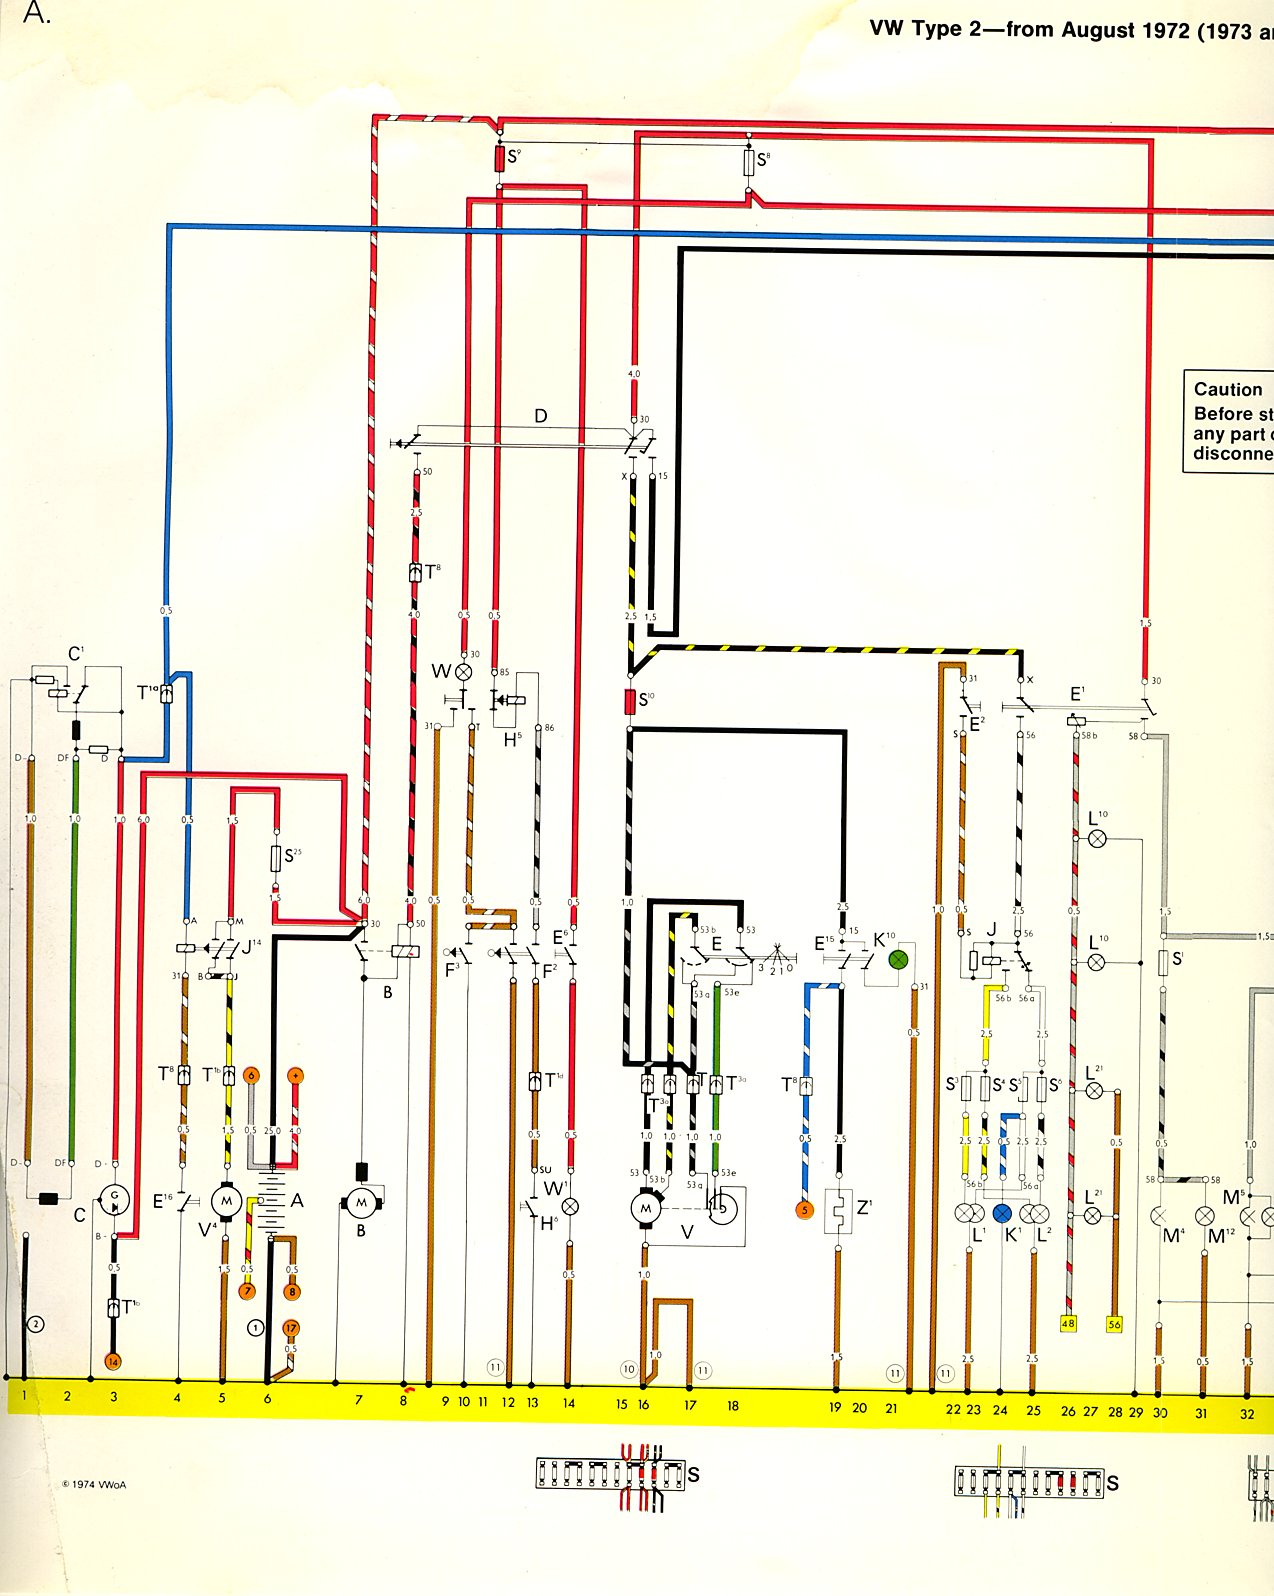 1971 Vw Super Beetle Parts >> 1973-74 Bus Wiring diagram | TheGoldenBug.com